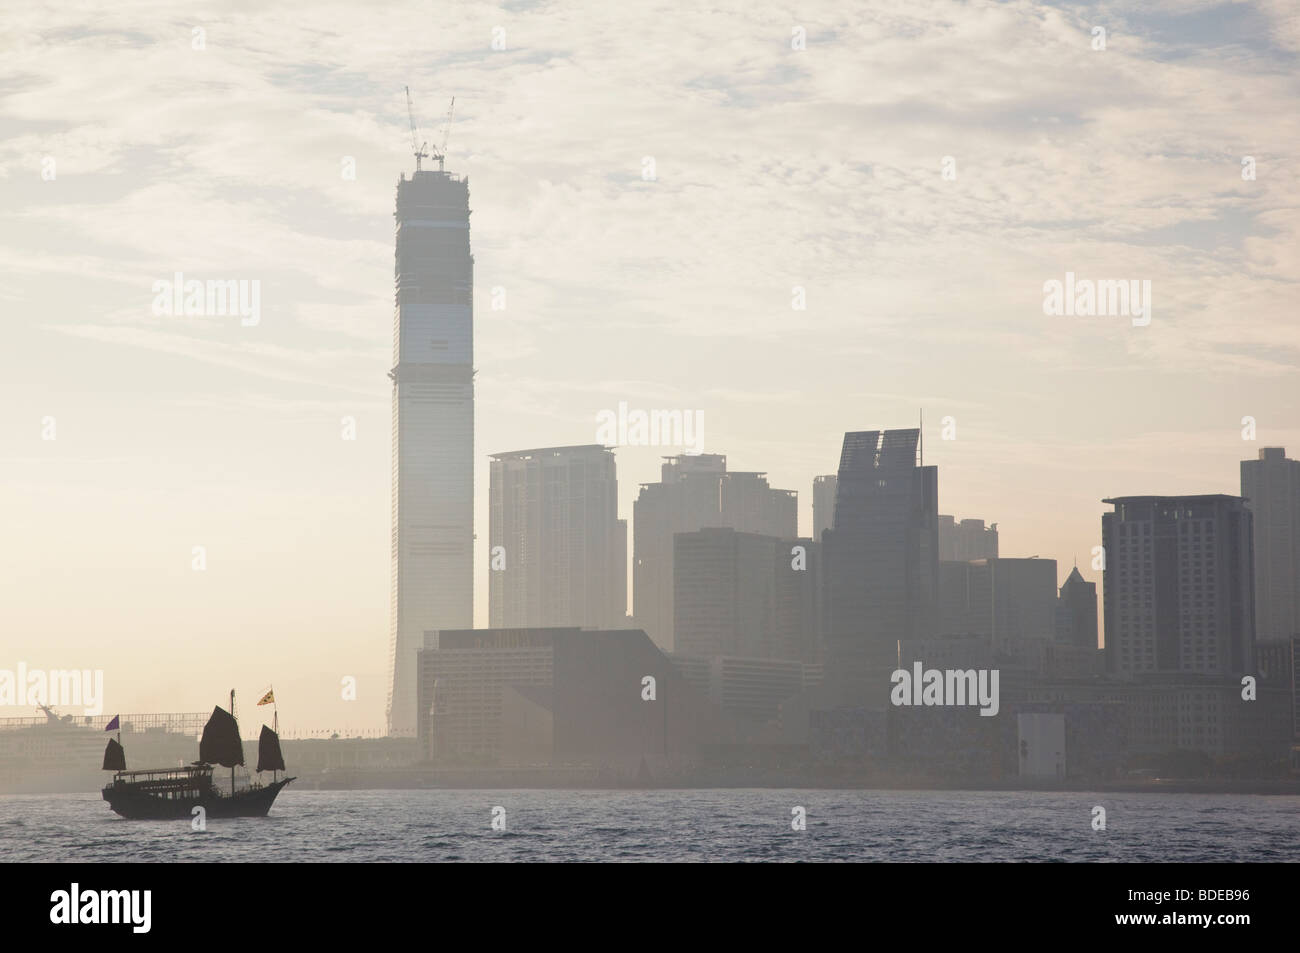 Junk boat in front of high rise buildings in Tsim Sha Tsui, Hong Kong, China. Stock Photo